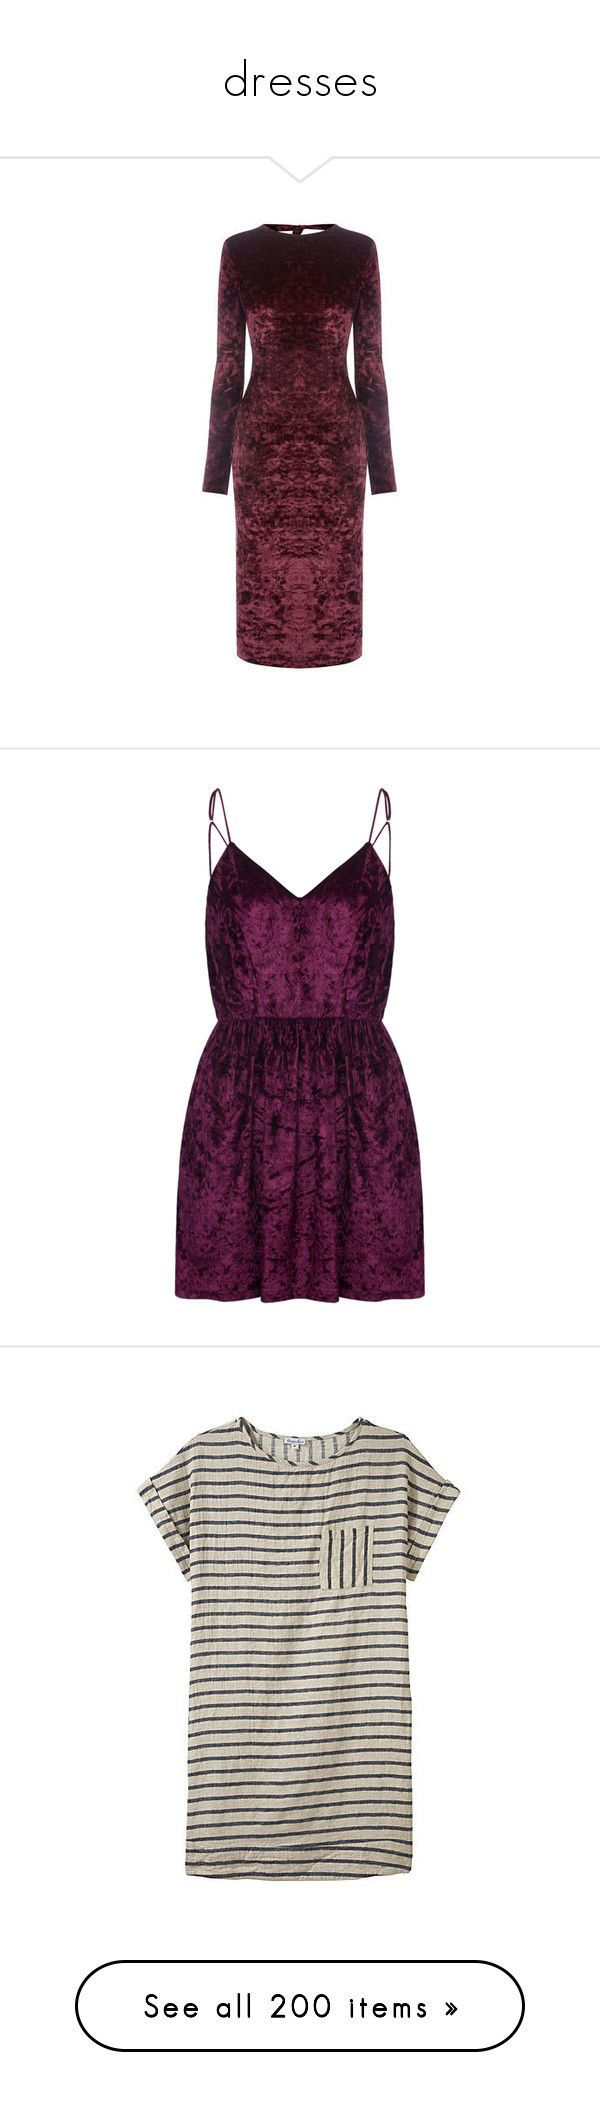 """dresses"" by sinyukovayulya ❤ liked on Polyvore featuring dresses, berry, velvet dress, bodycon dress, form fitting dresses, figure hugging dresses, velvet bodycon dress, purple skater dress, purple velvet dress and spaghetti strap backless dress"